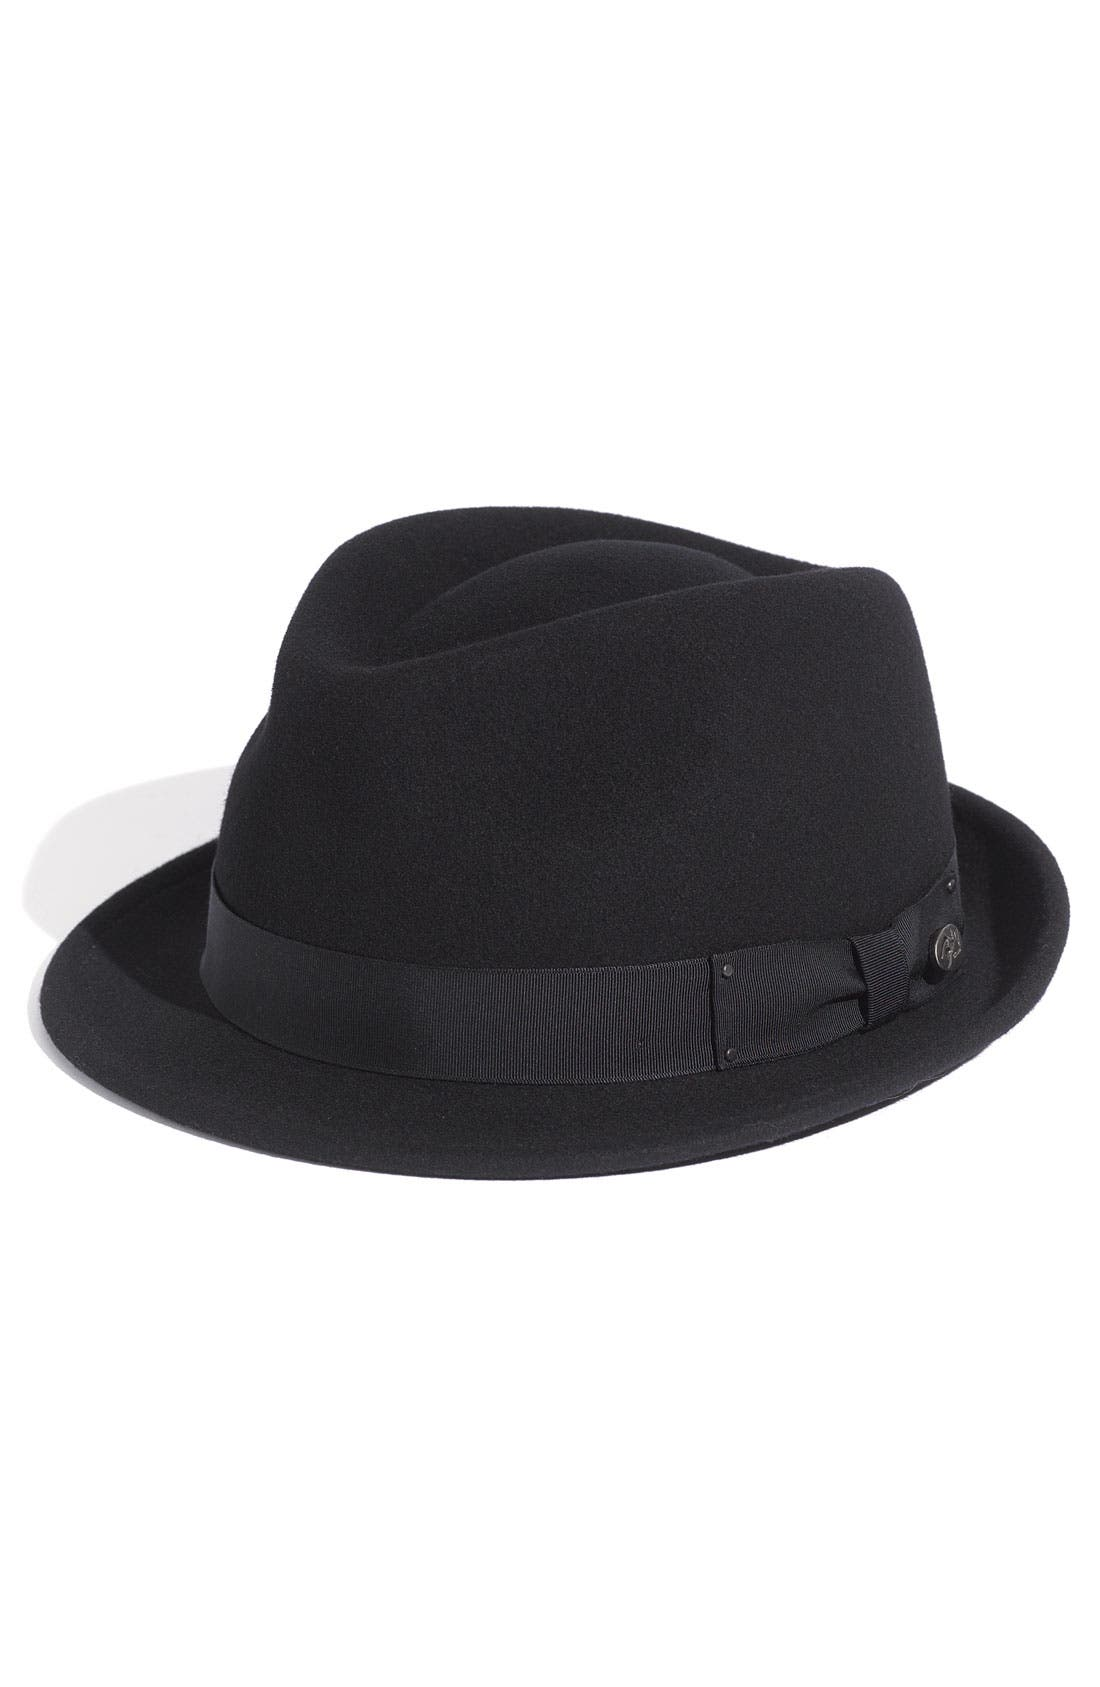 'Wynn' Packable Fedora,                         Main,                         color, Black